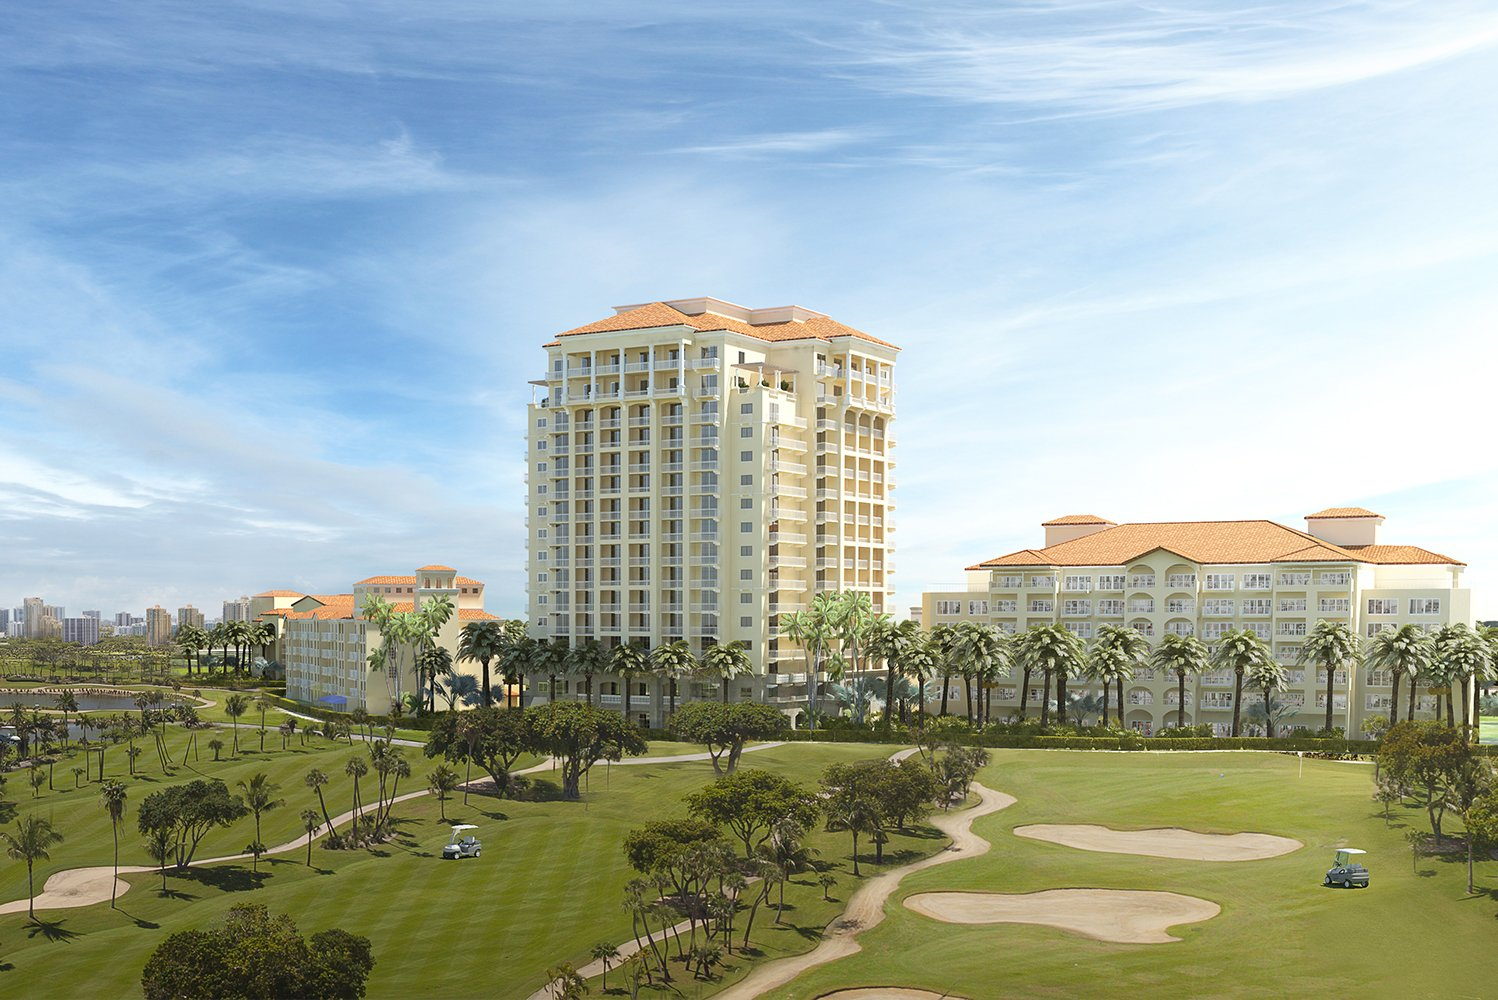 Turnberry Associates and Marriott International will reopen Turnberry Isle Miami as part of the JW Marriott portfolio in Winter 2018.